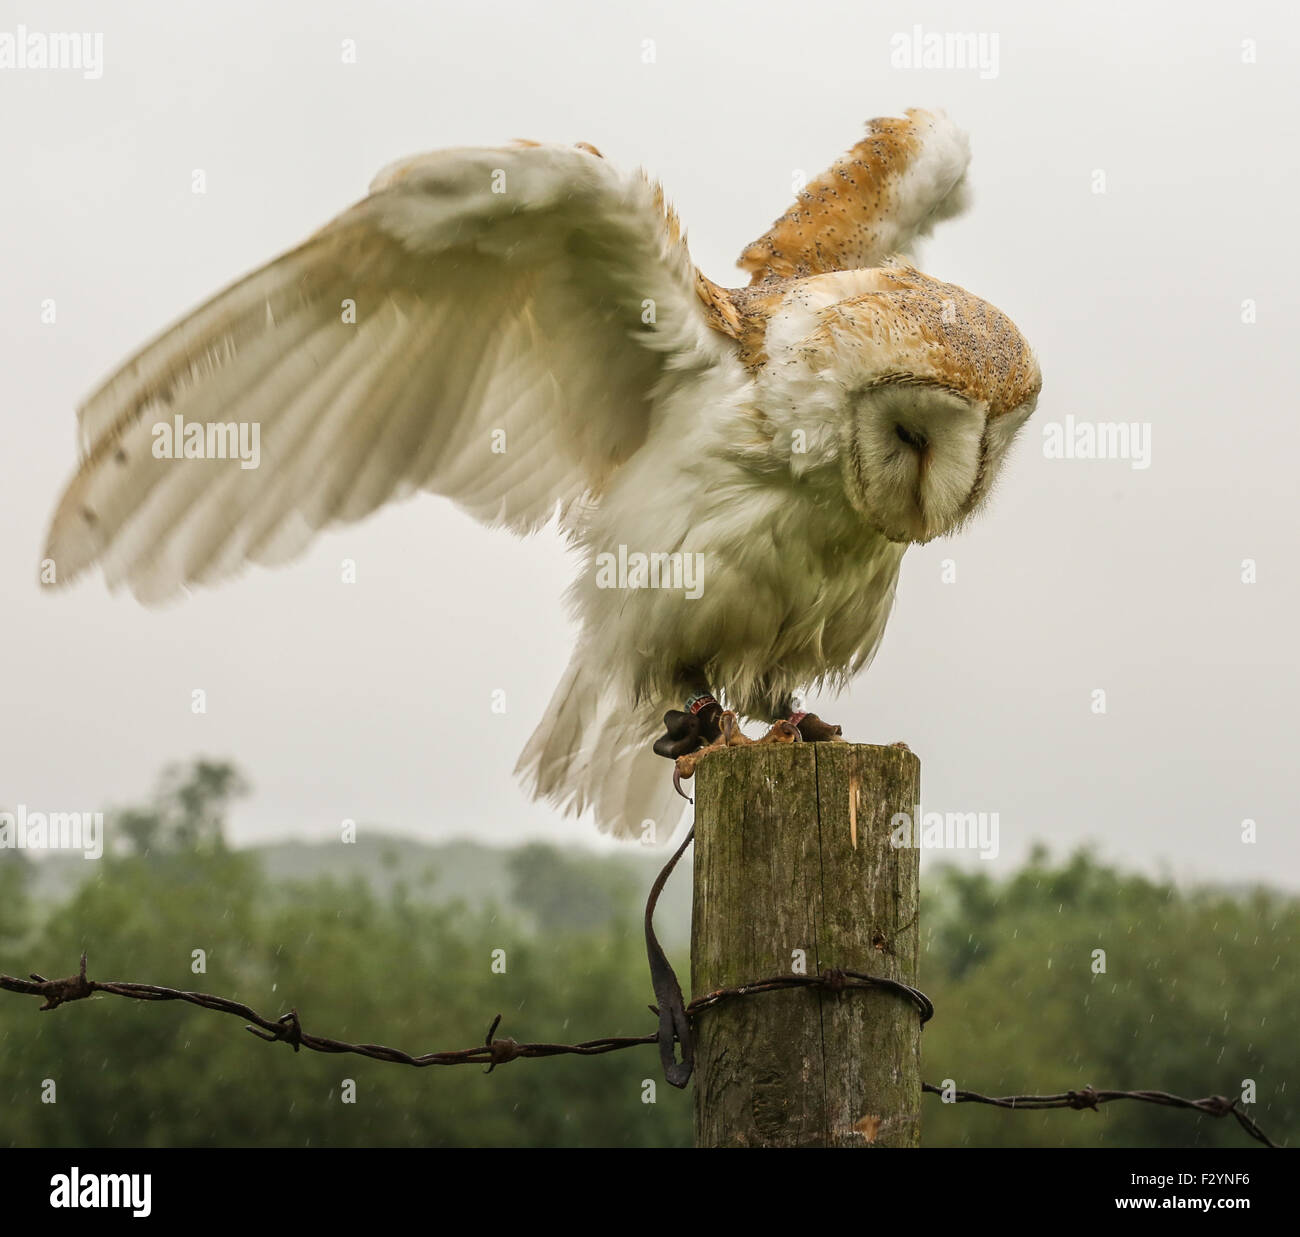 Photograph of a barn owl landing on a fence post and showing off his plumage. - Stock Image